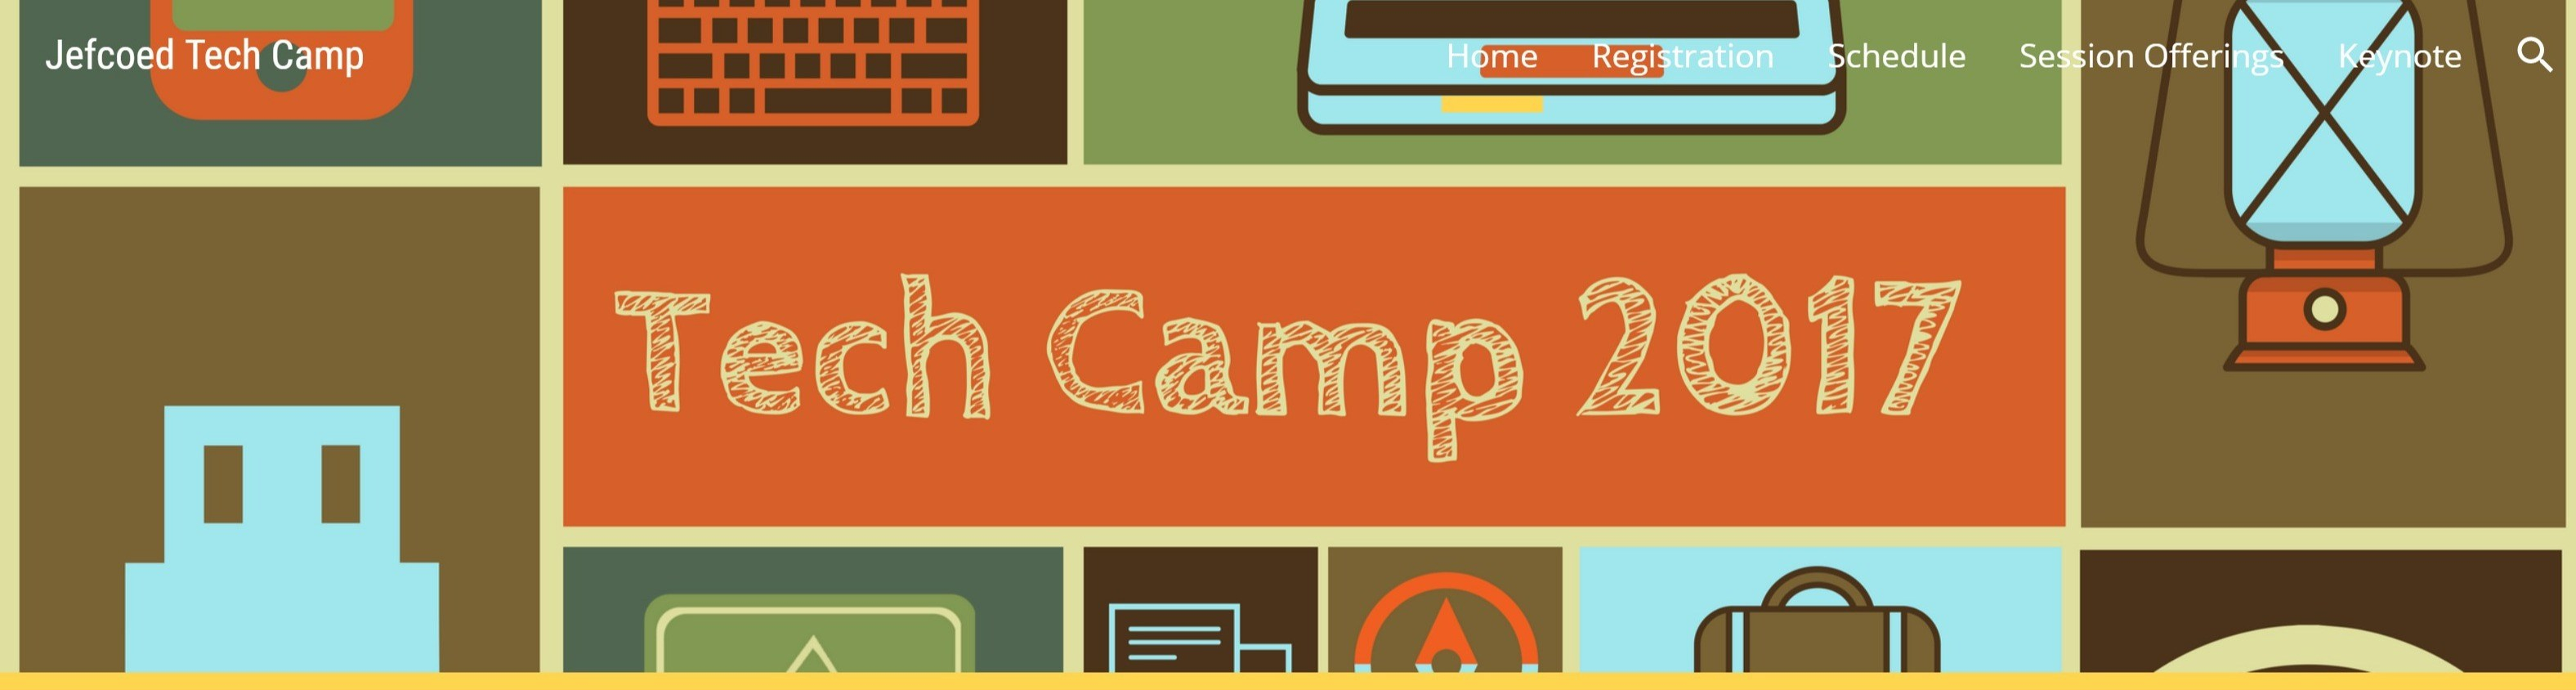 heading of tech camp website